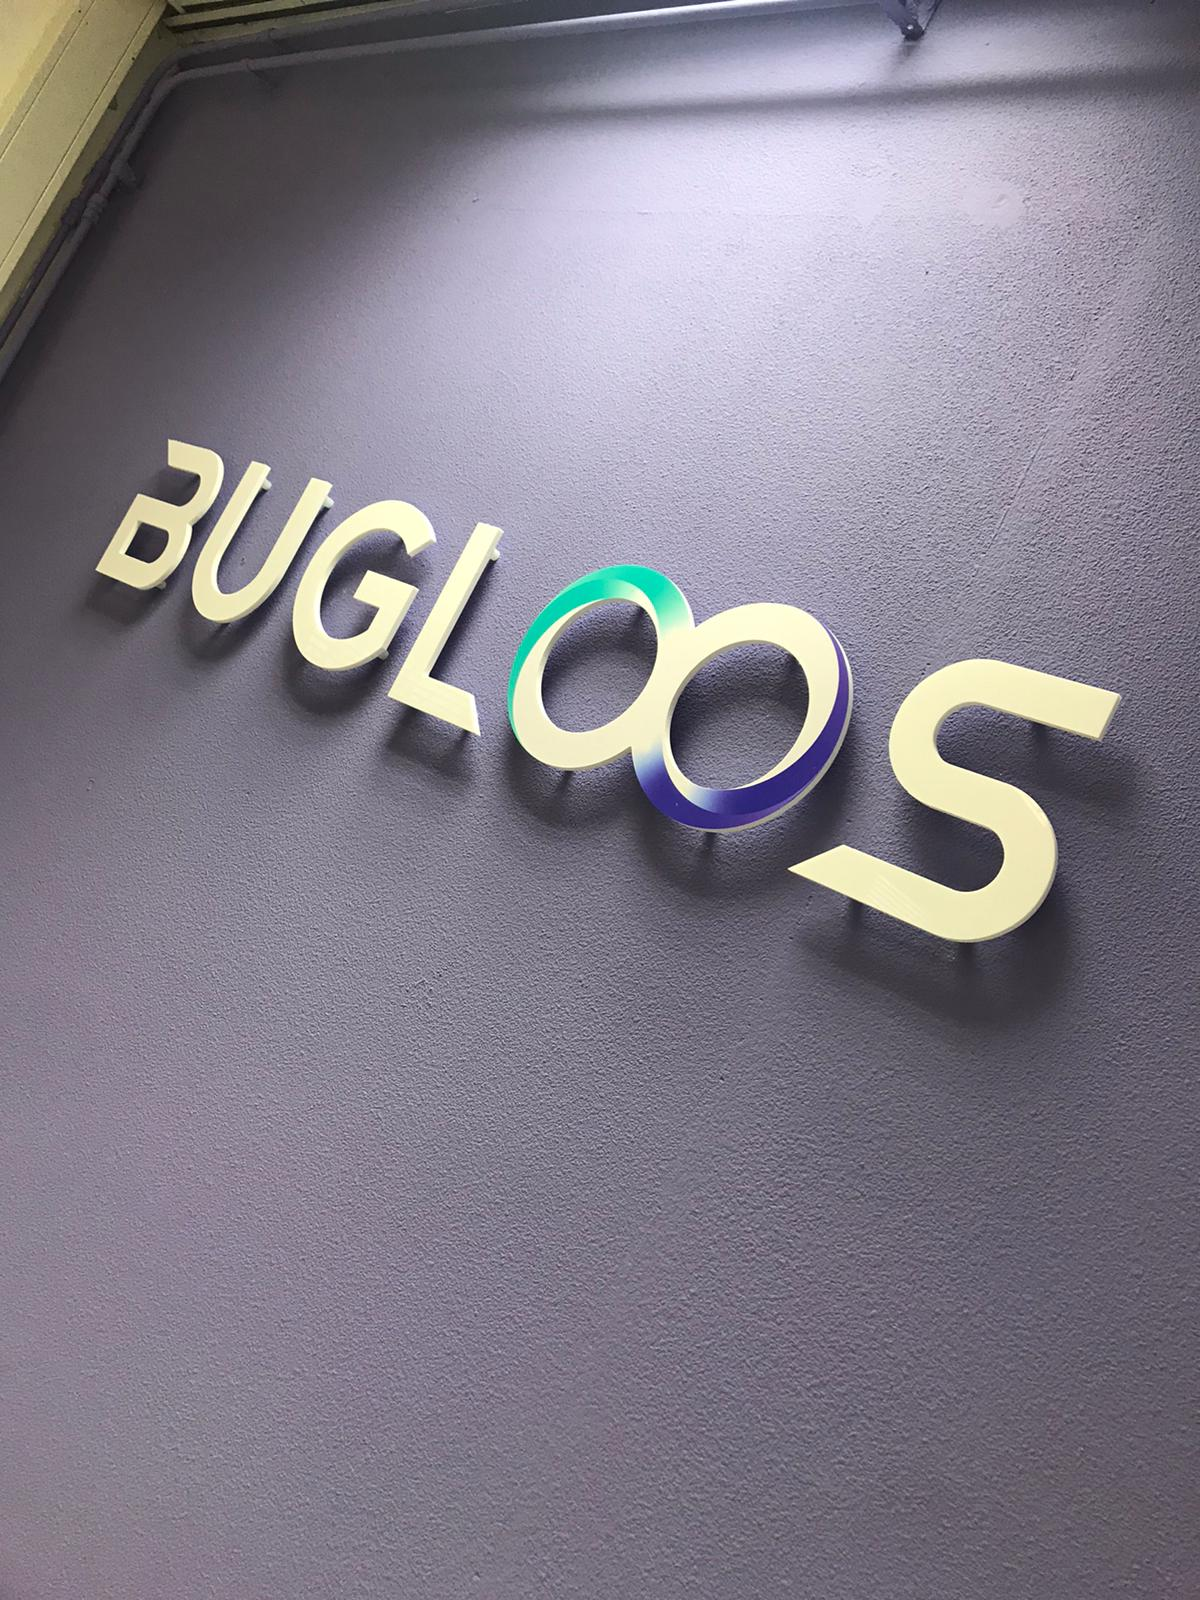 Bugloos freesletters